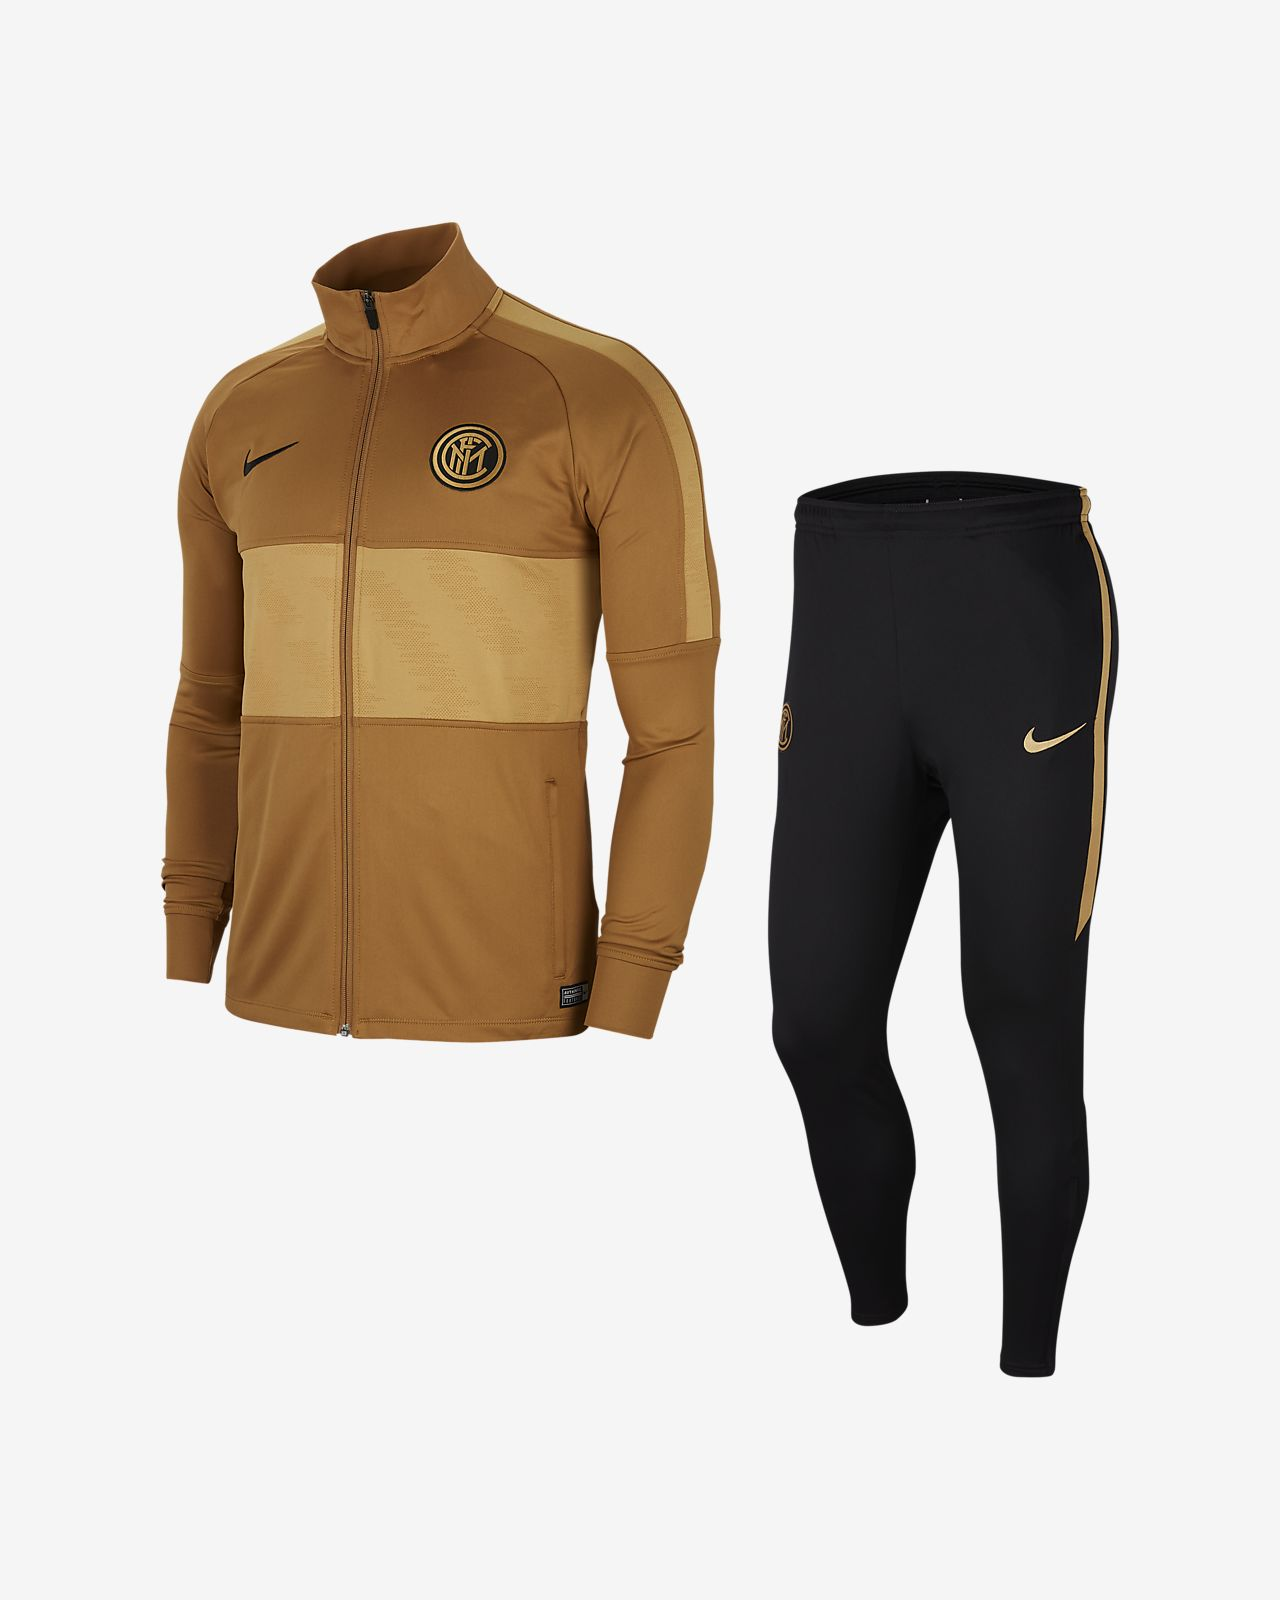 Nike Dri FIT Inter Mailand Strike Herren Fußball Trainingsanzug